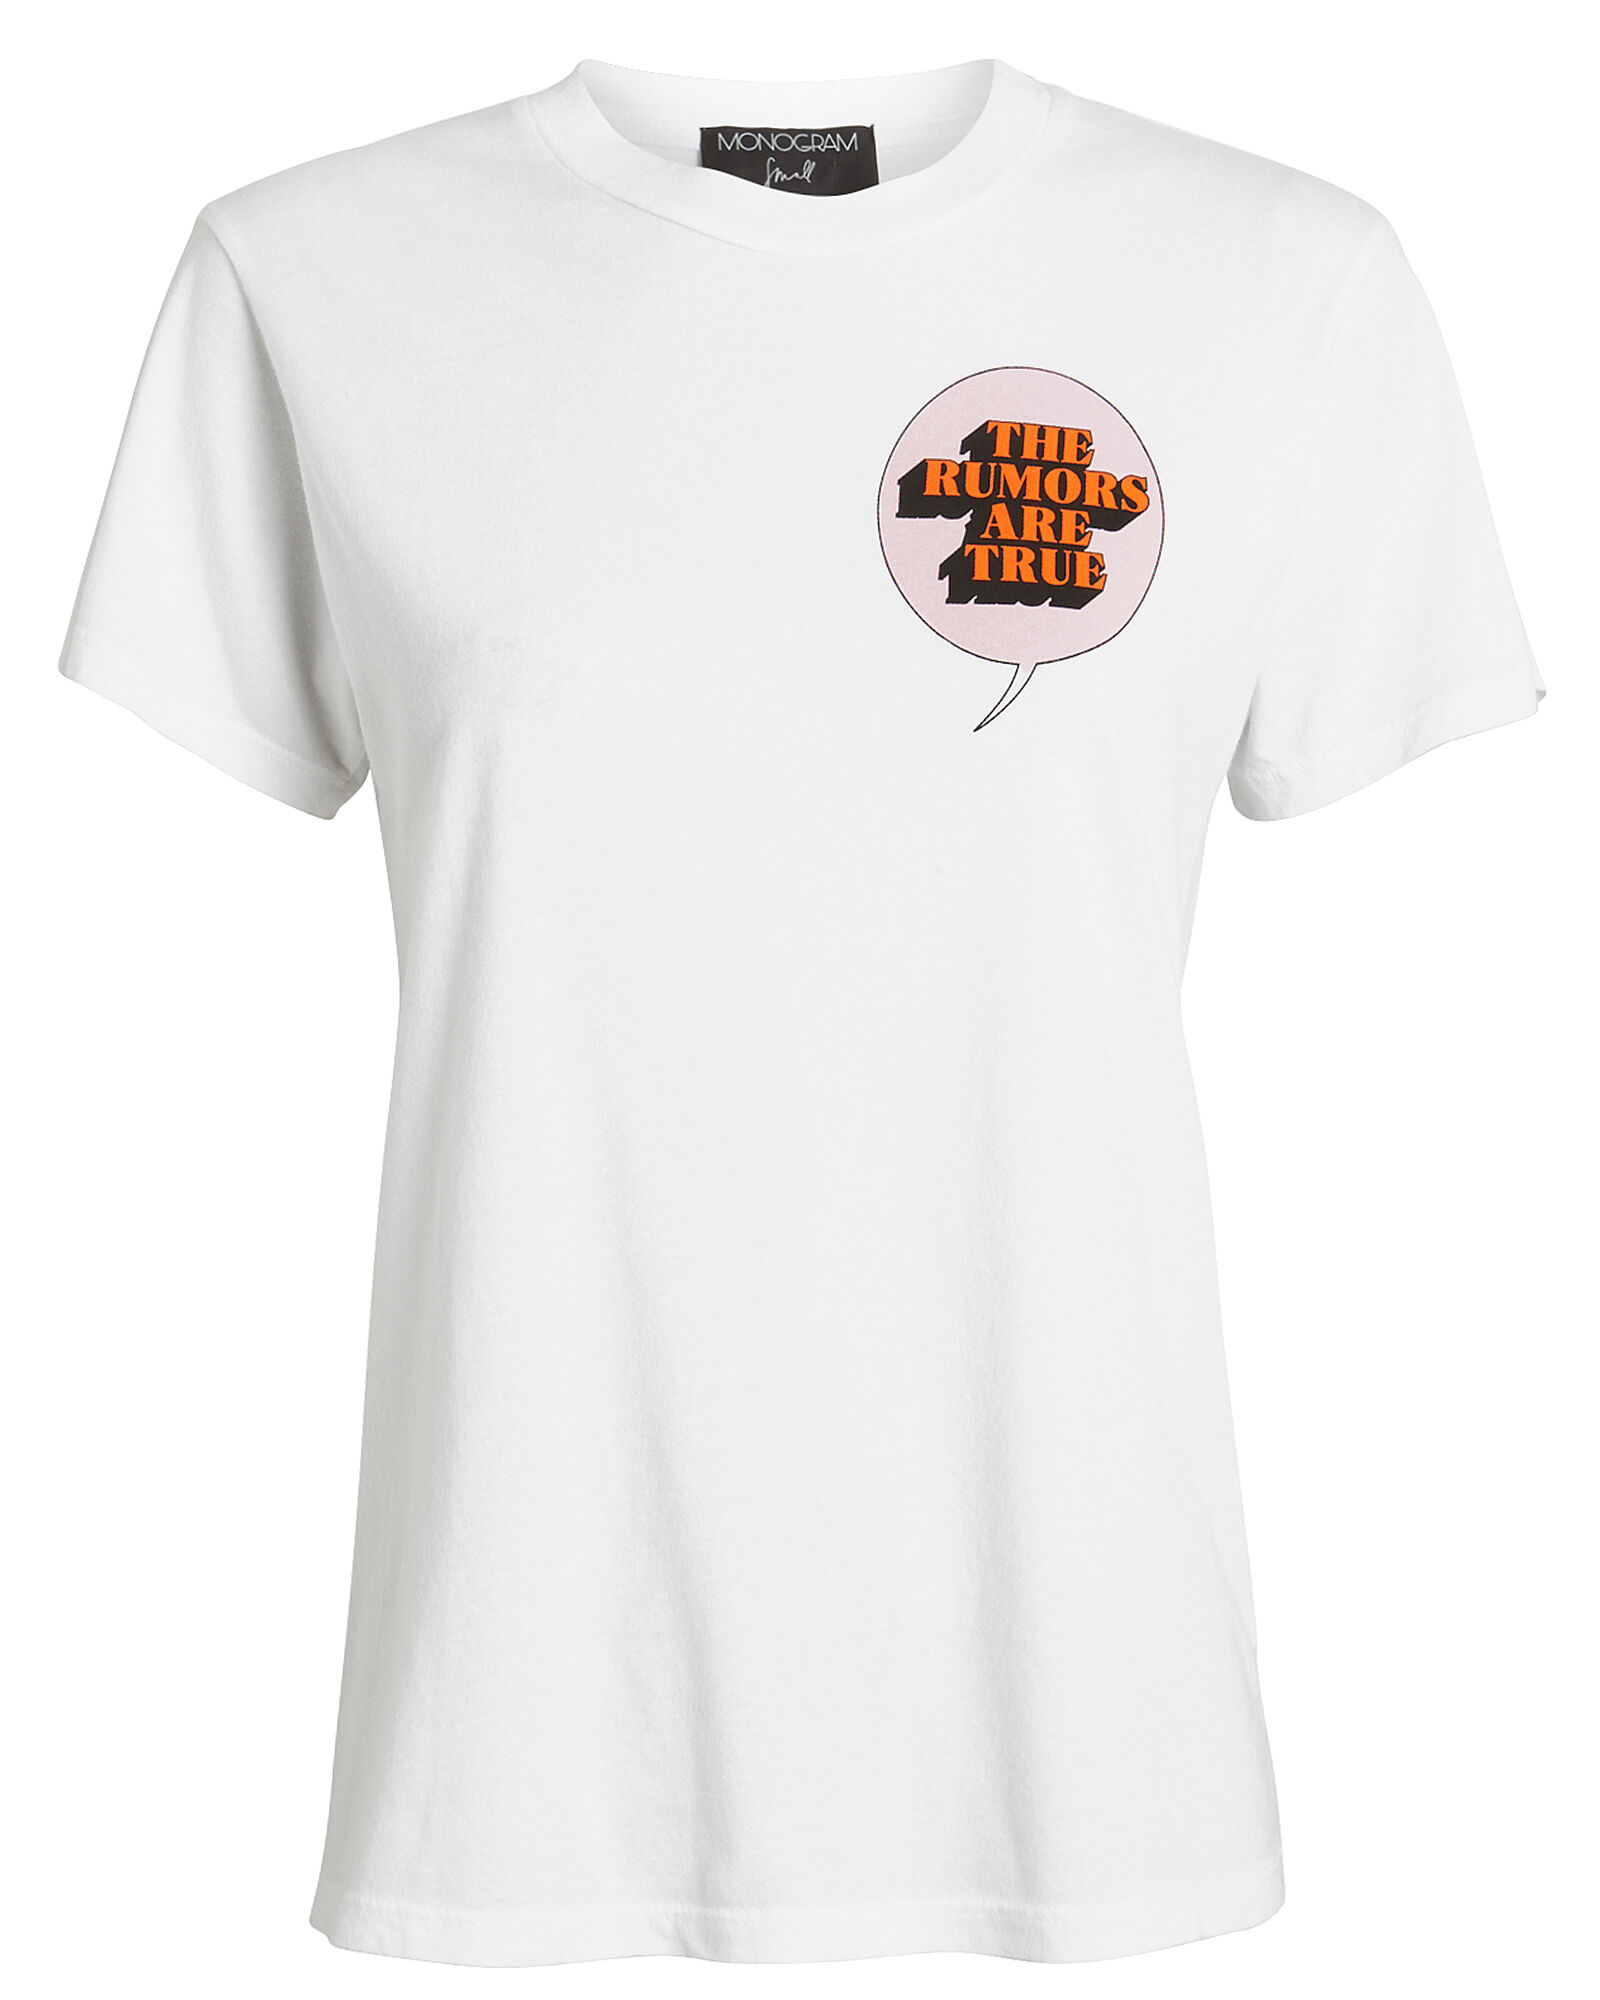 The Rumors Are True T-Shirt, WHITE, hi-res